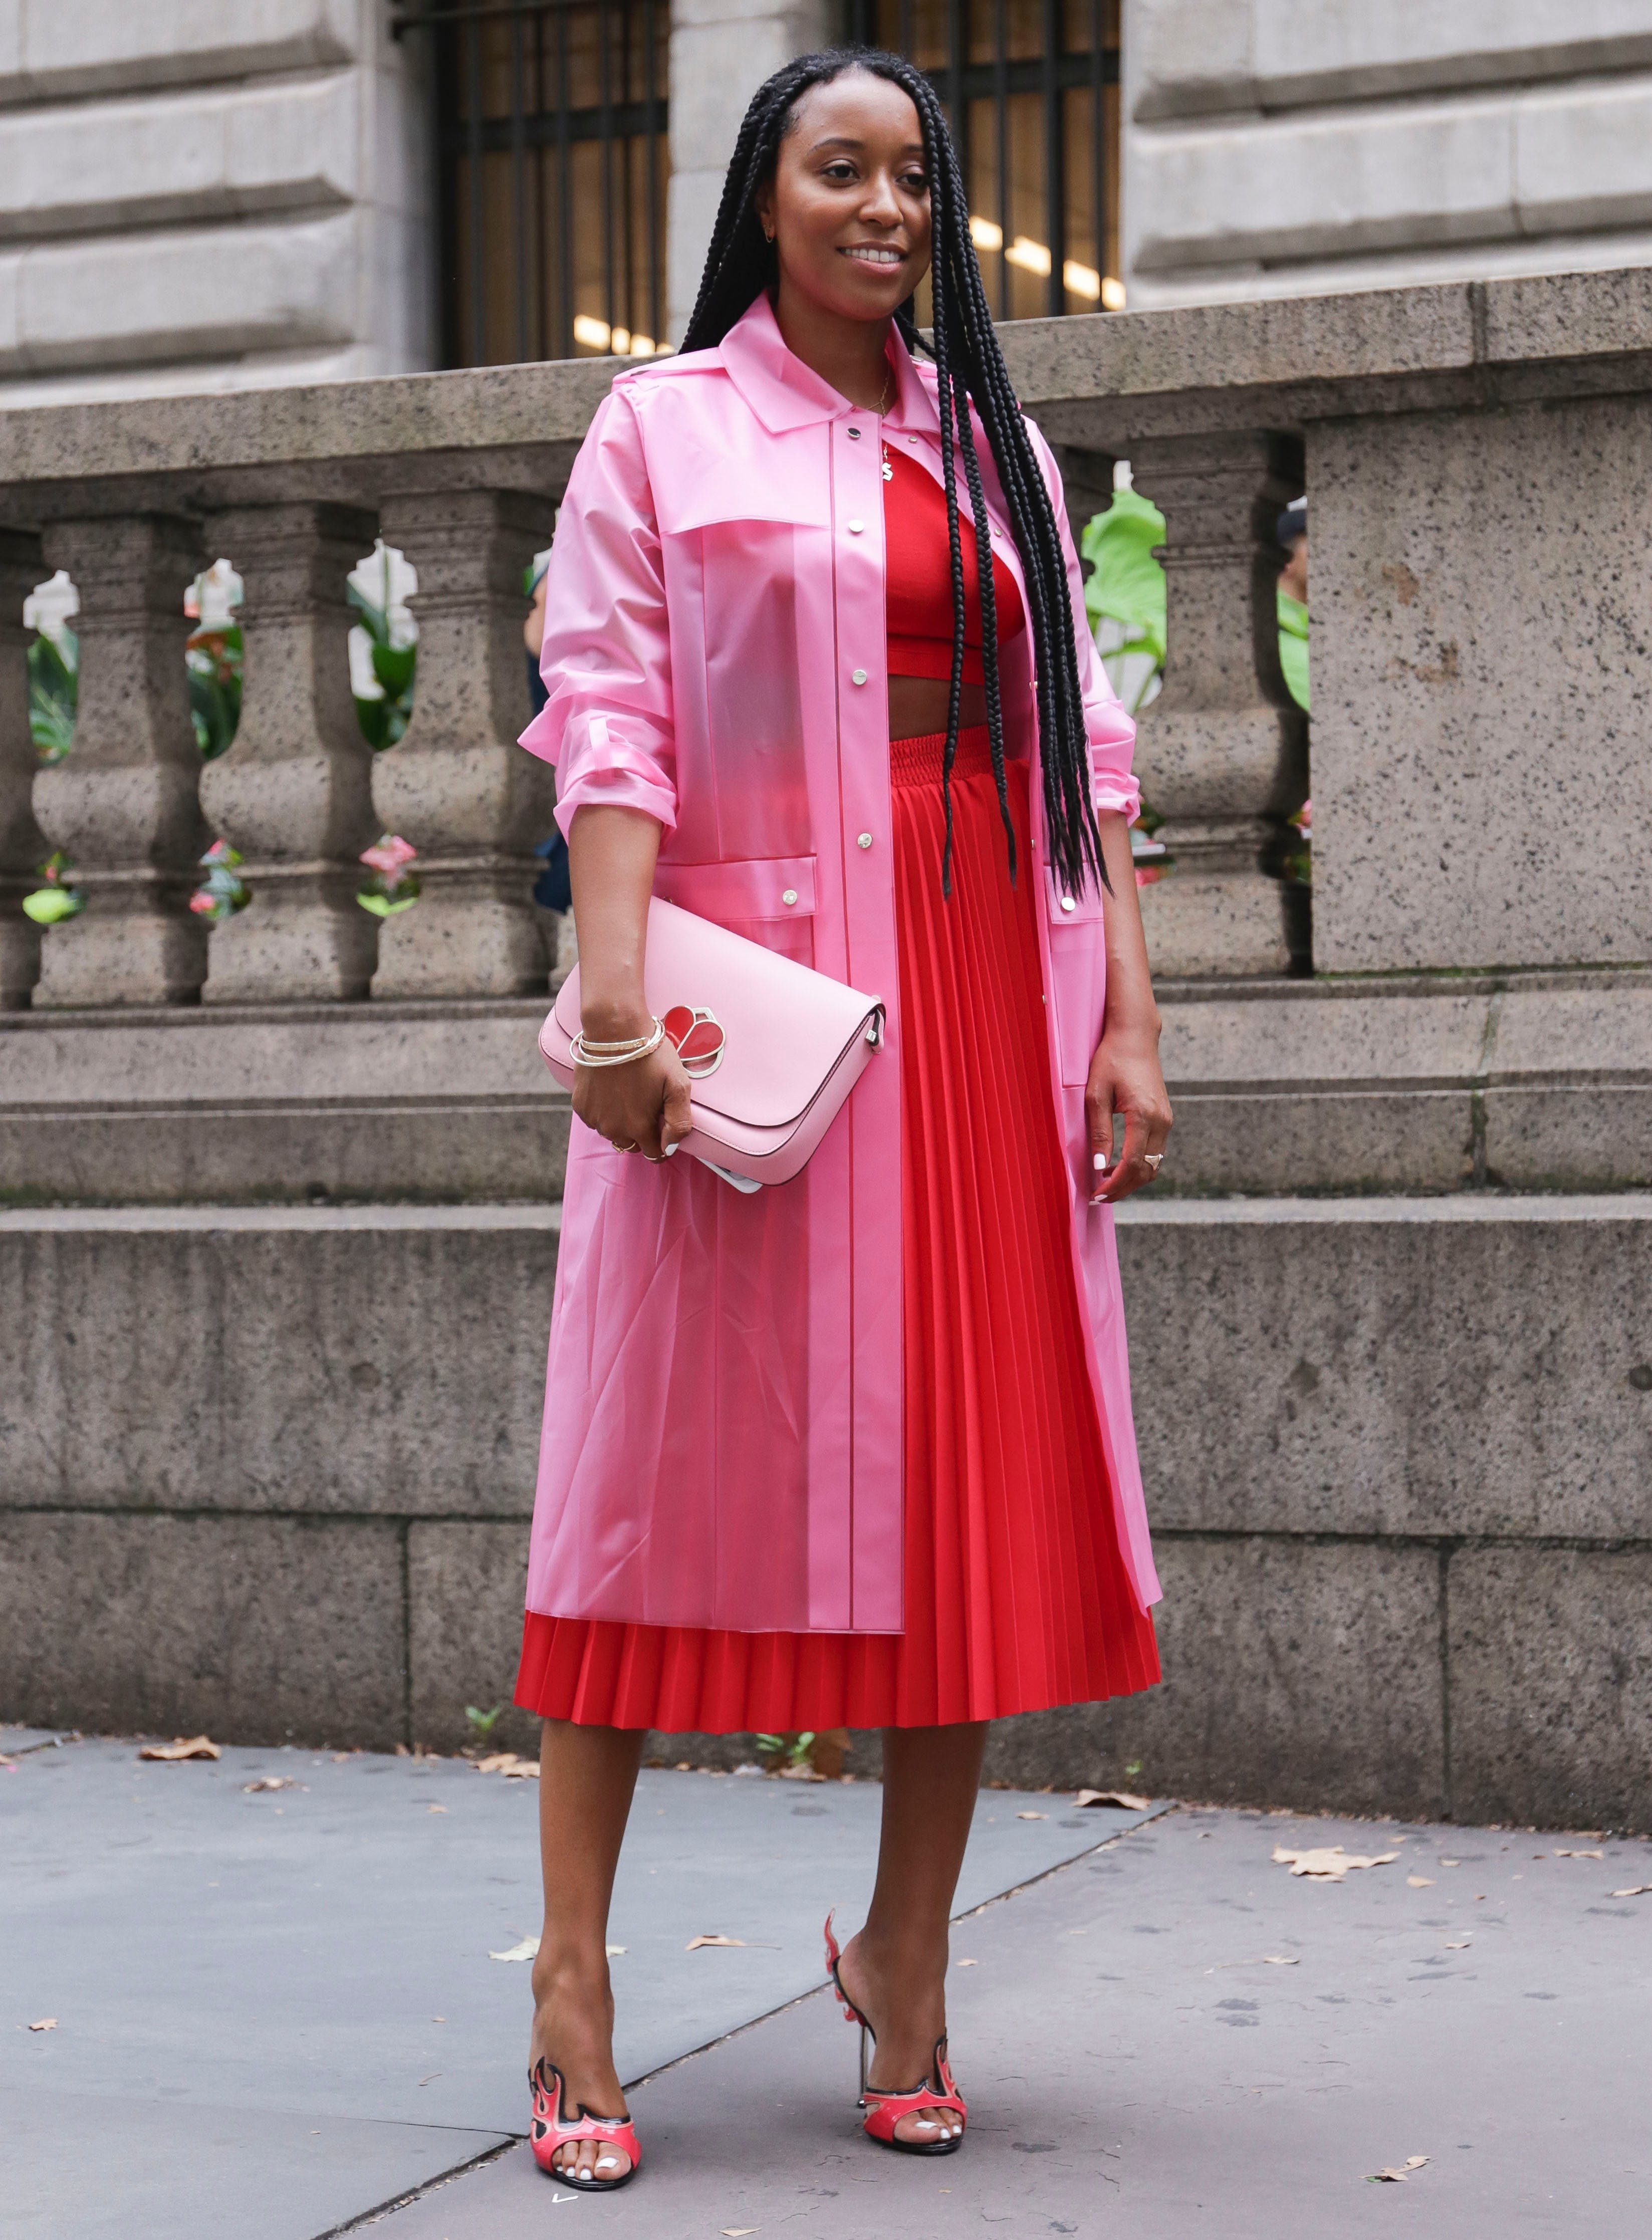 woman wearing pink and red